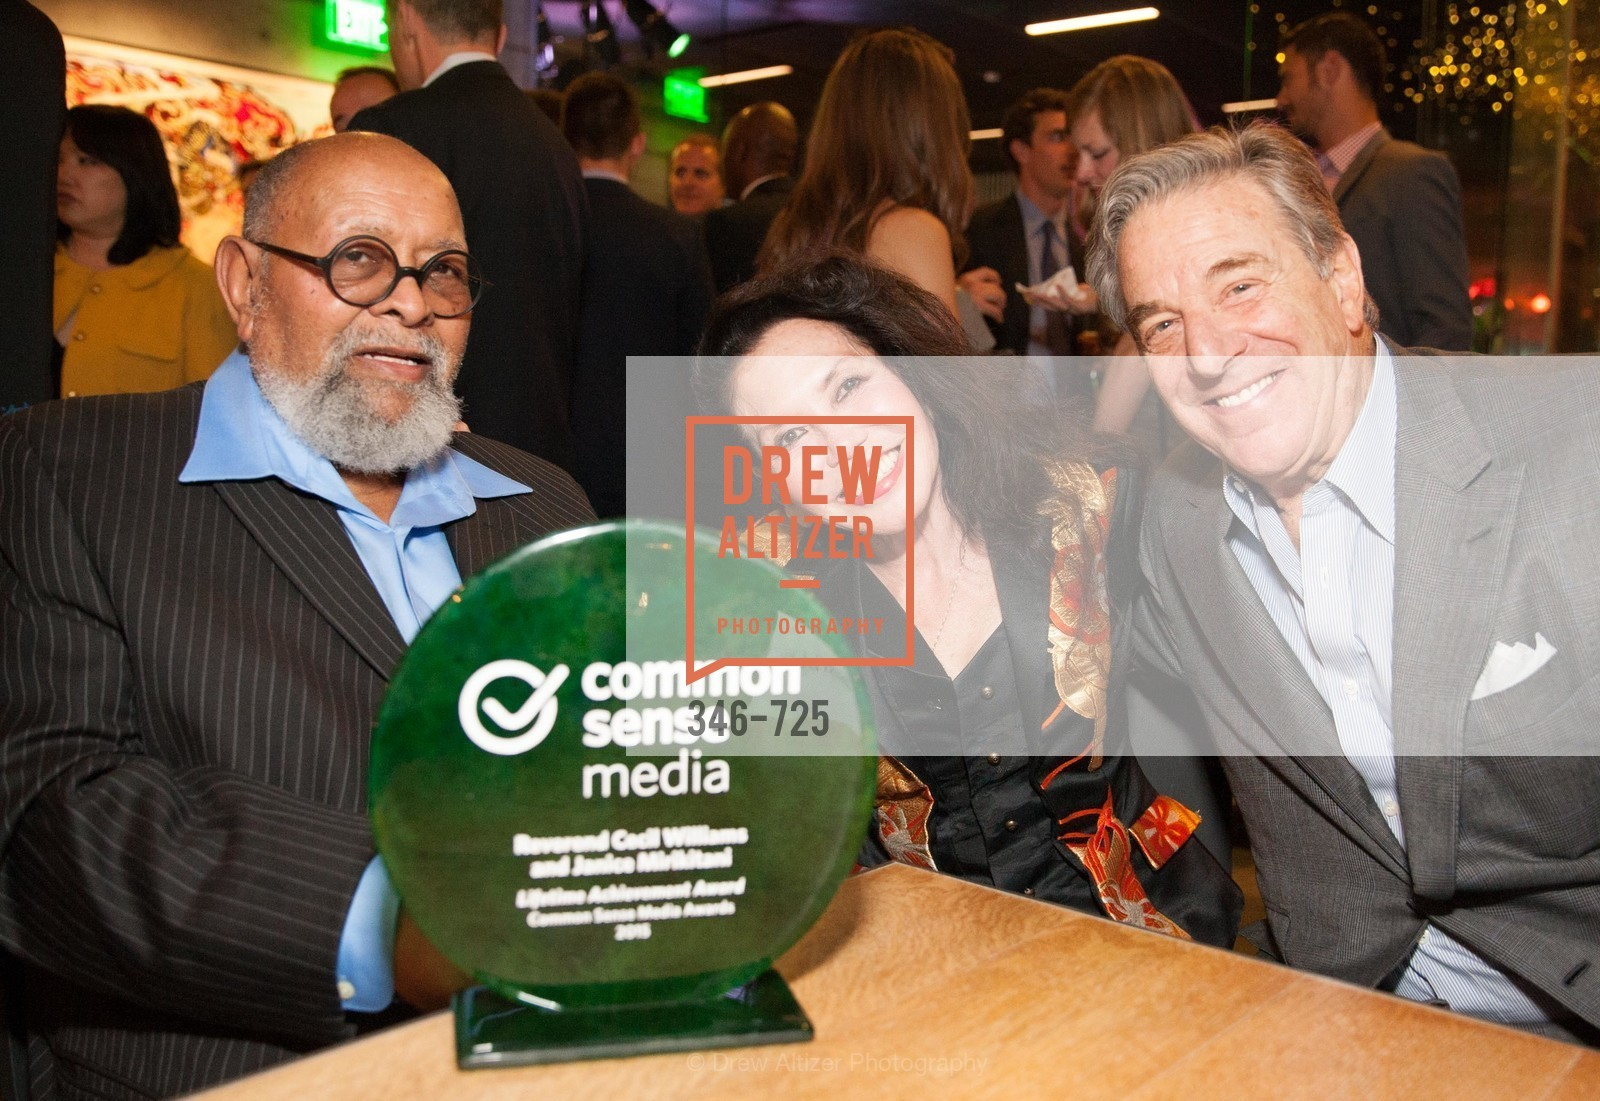 Reverend Cecil Williams, Janice Mirikitani, Paul Pelosi, COMMON SENSE Media Awards 2015, US, May 14th, 2015,Drew Altizer, Drew Altizer Photography, full-service event agency, private events, San Francisco photographer, photographer California